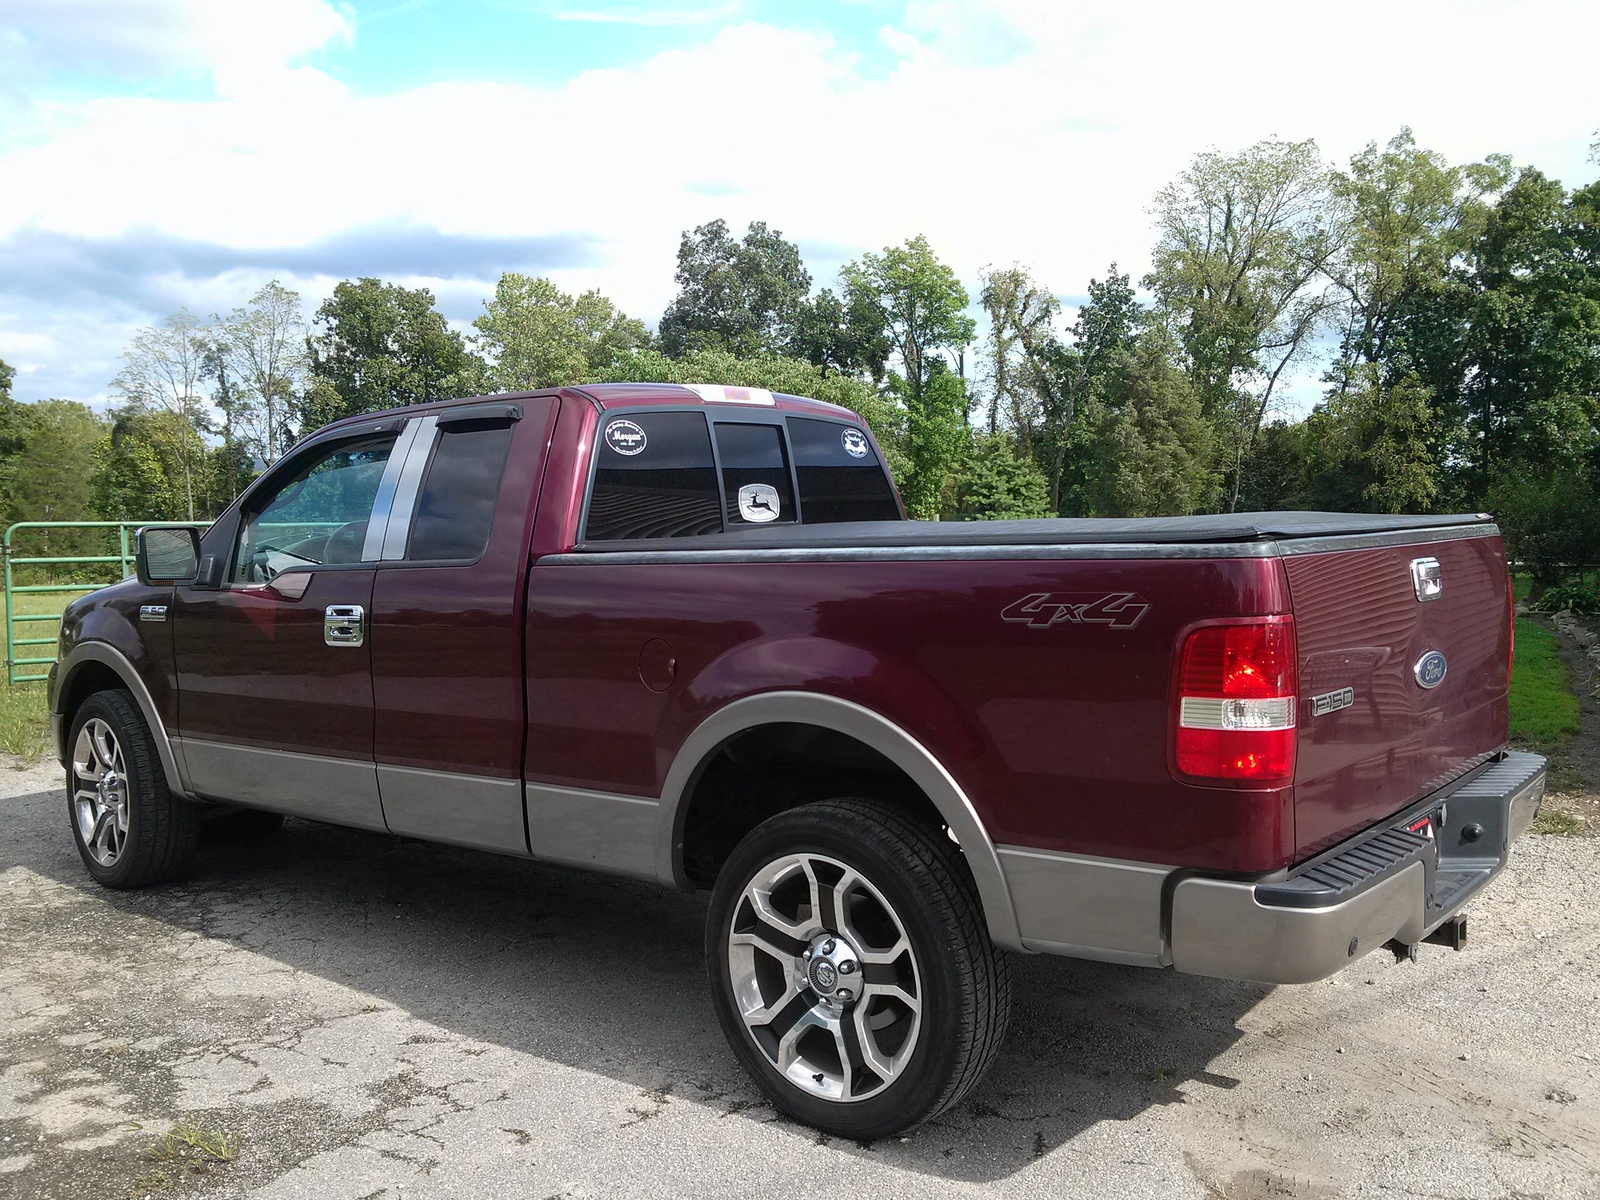 Ford Shelby F150 >> 2004 Ford F-150 - Pictures - CarGurus